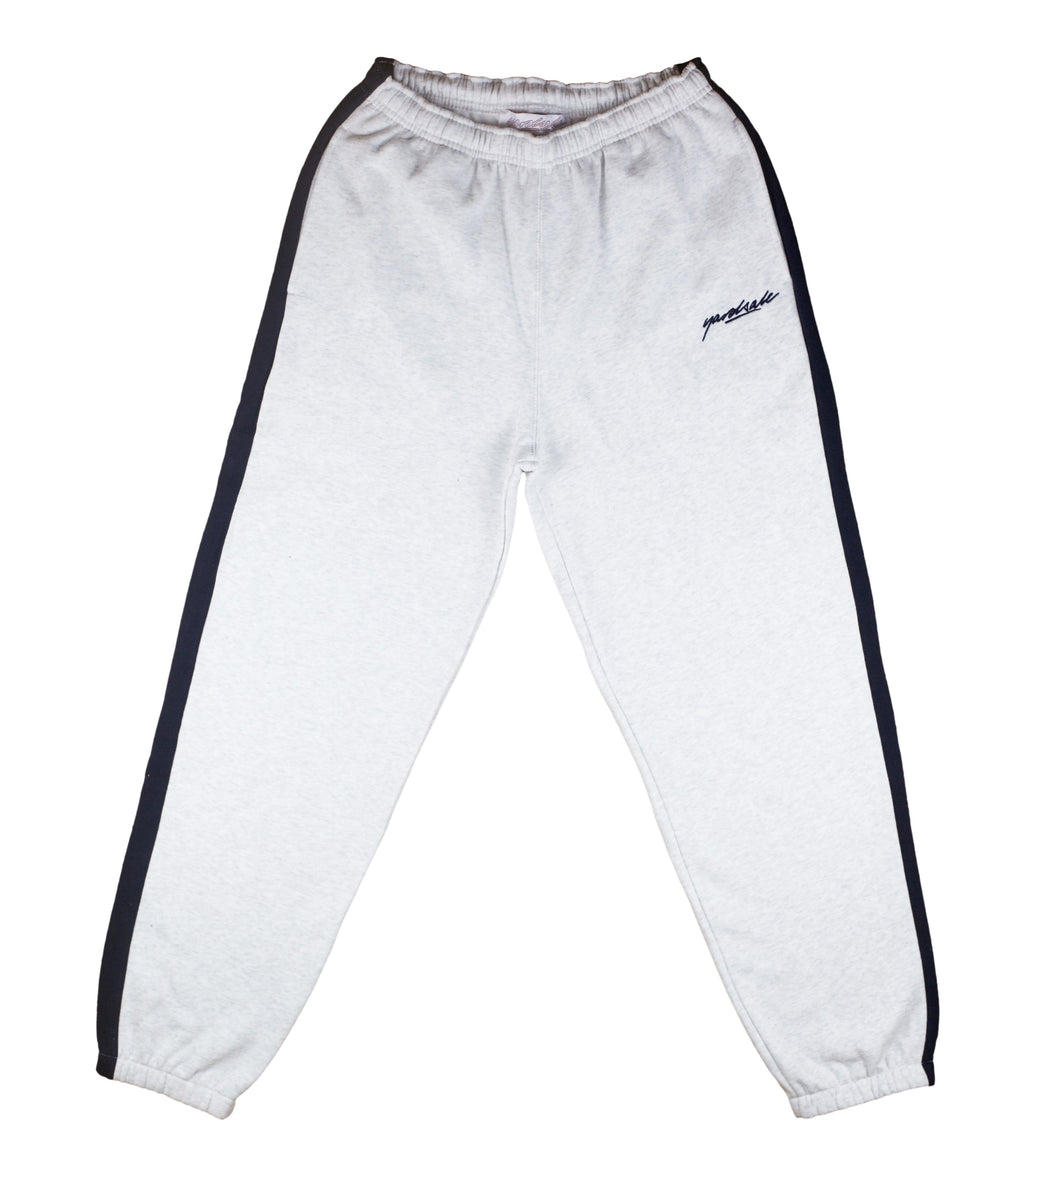 ASH/GREY TRACKSUIT BOTTOMS